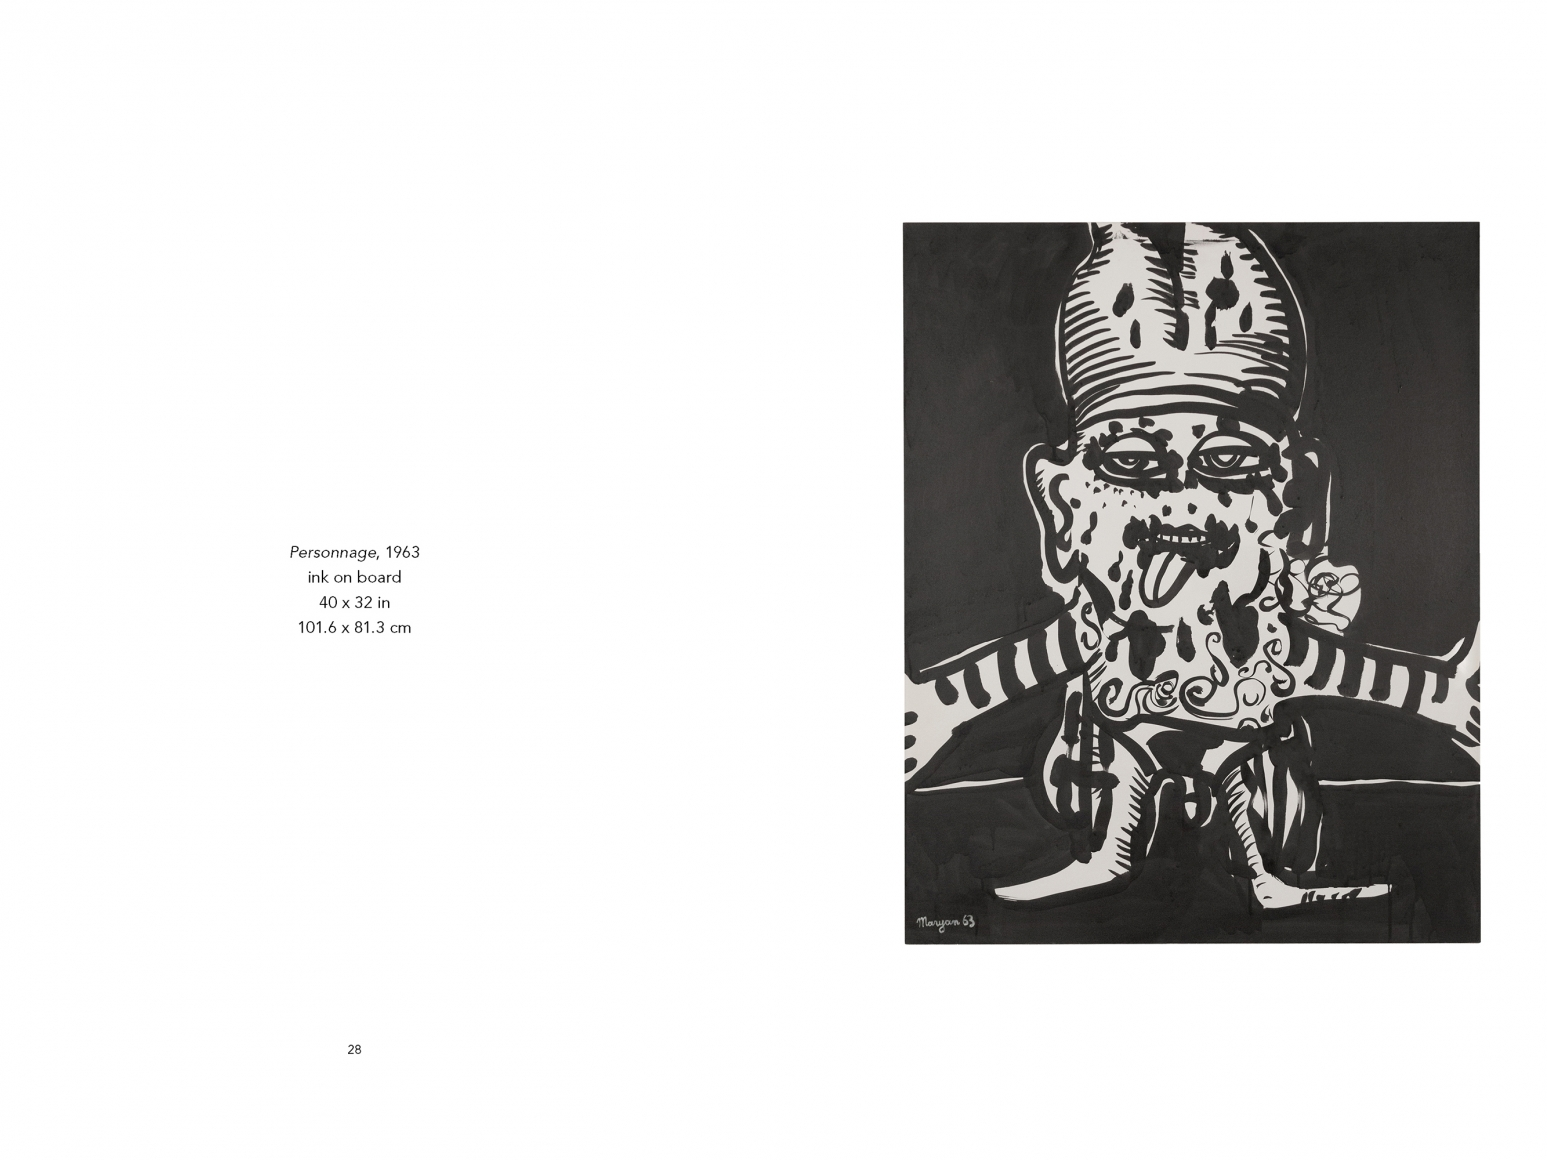 Interior view of Maryan: Personnages, published by Venus Over Manhattan, New York, 2018